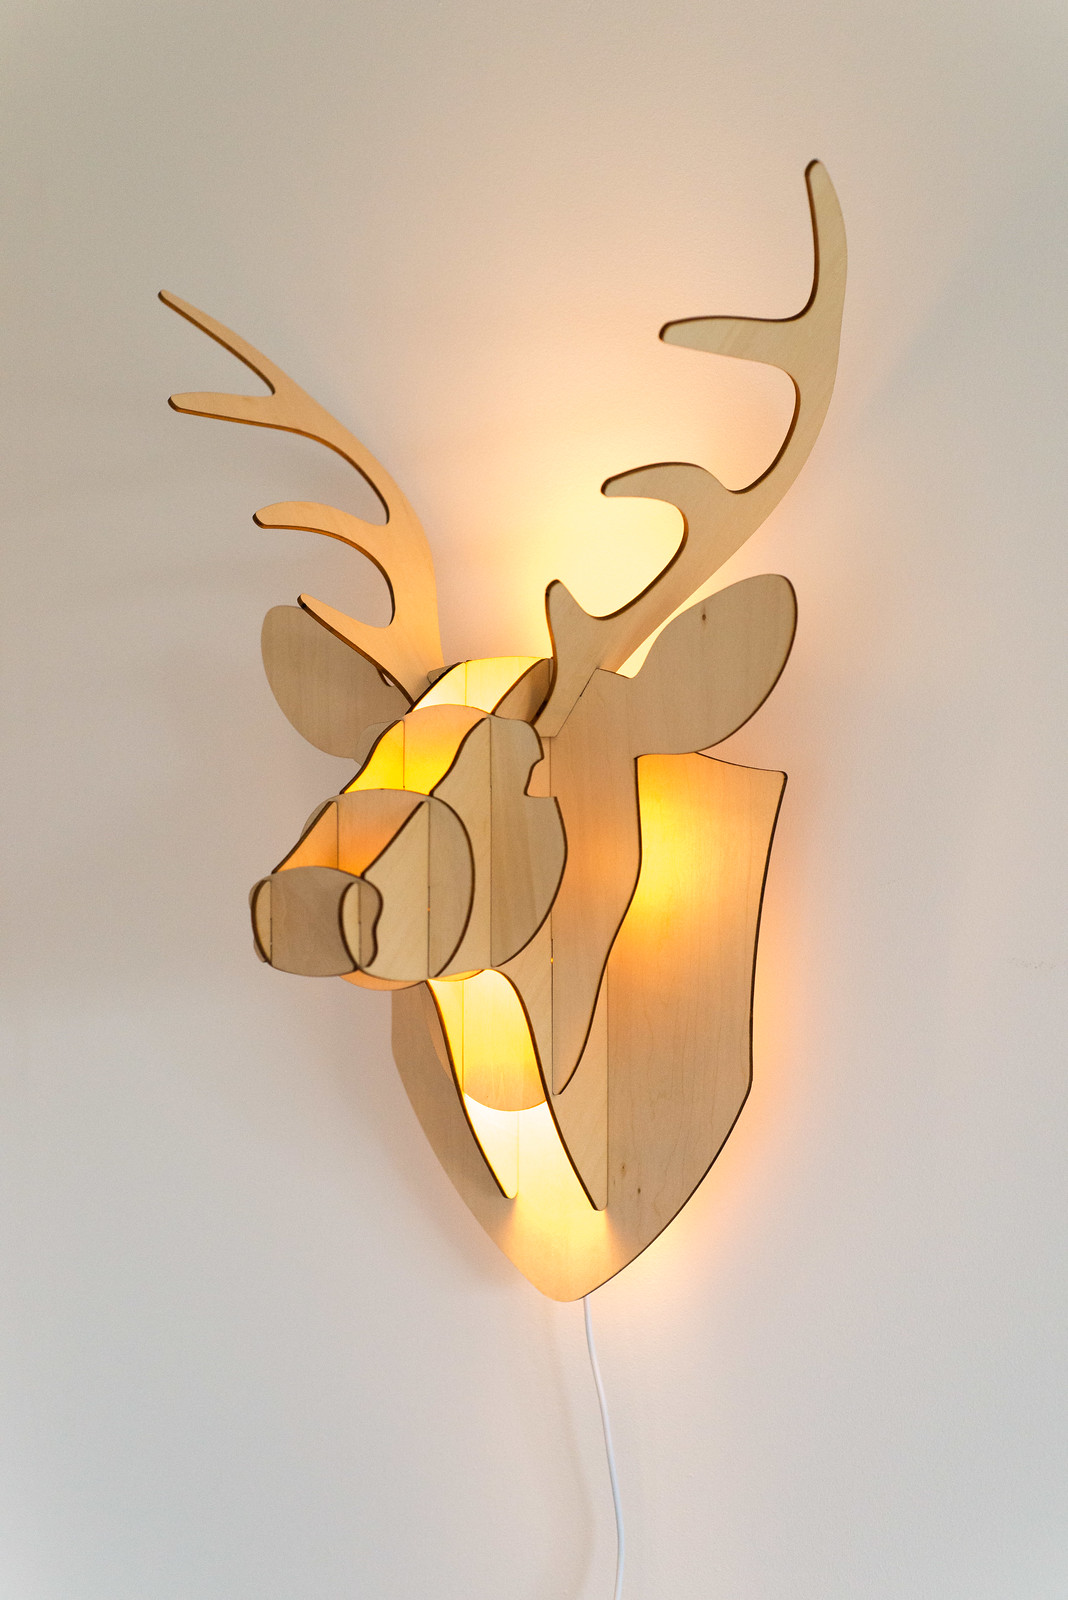 Iconic lights stag head light review maybush studio i also love the way the light reflects of the angular shape of the stag head and i mozeypictures Gallery